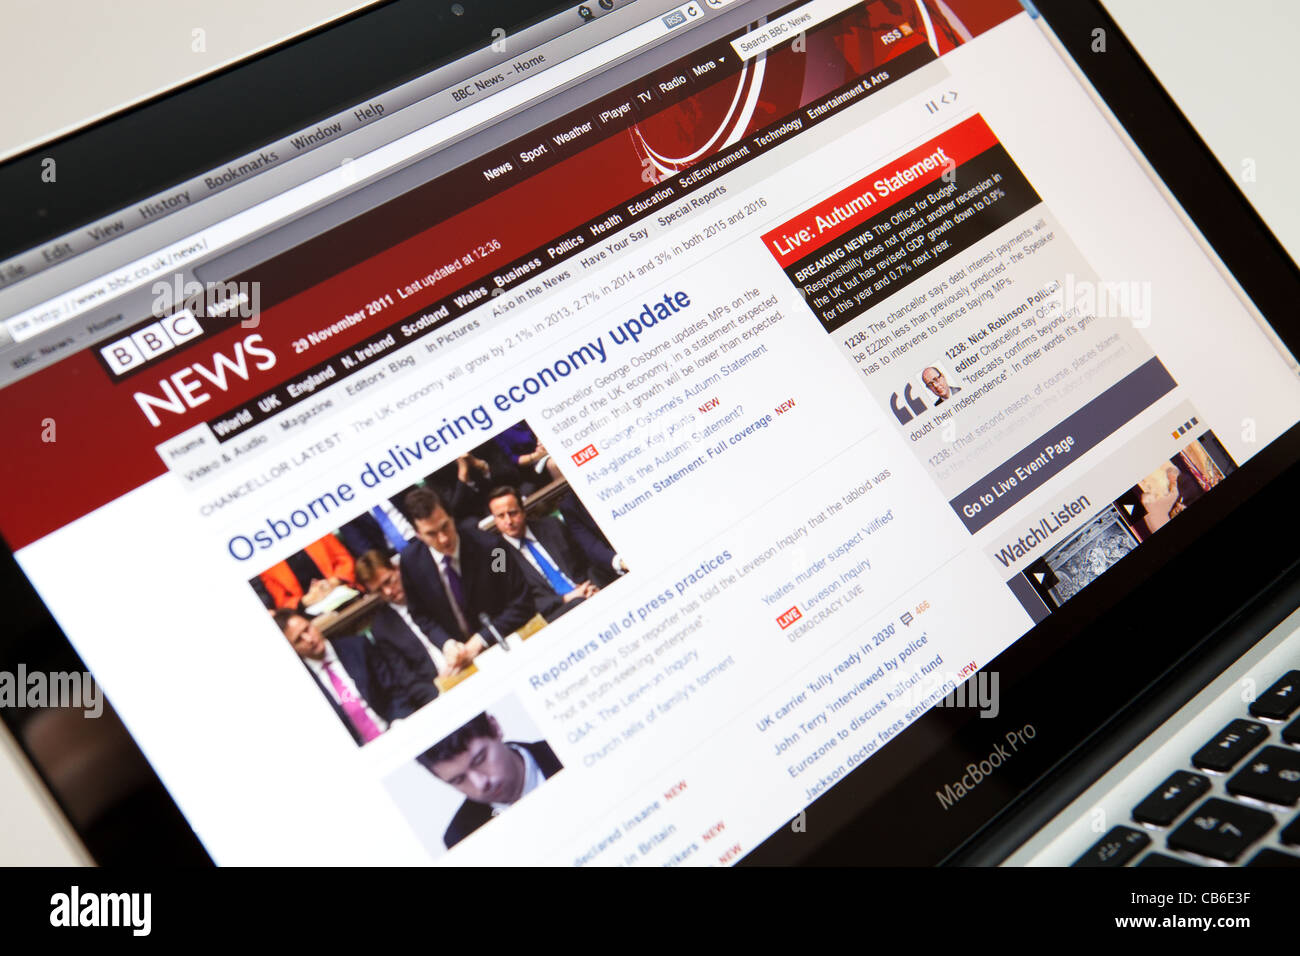 BBC News Website Screen shot of web page - Stock Image